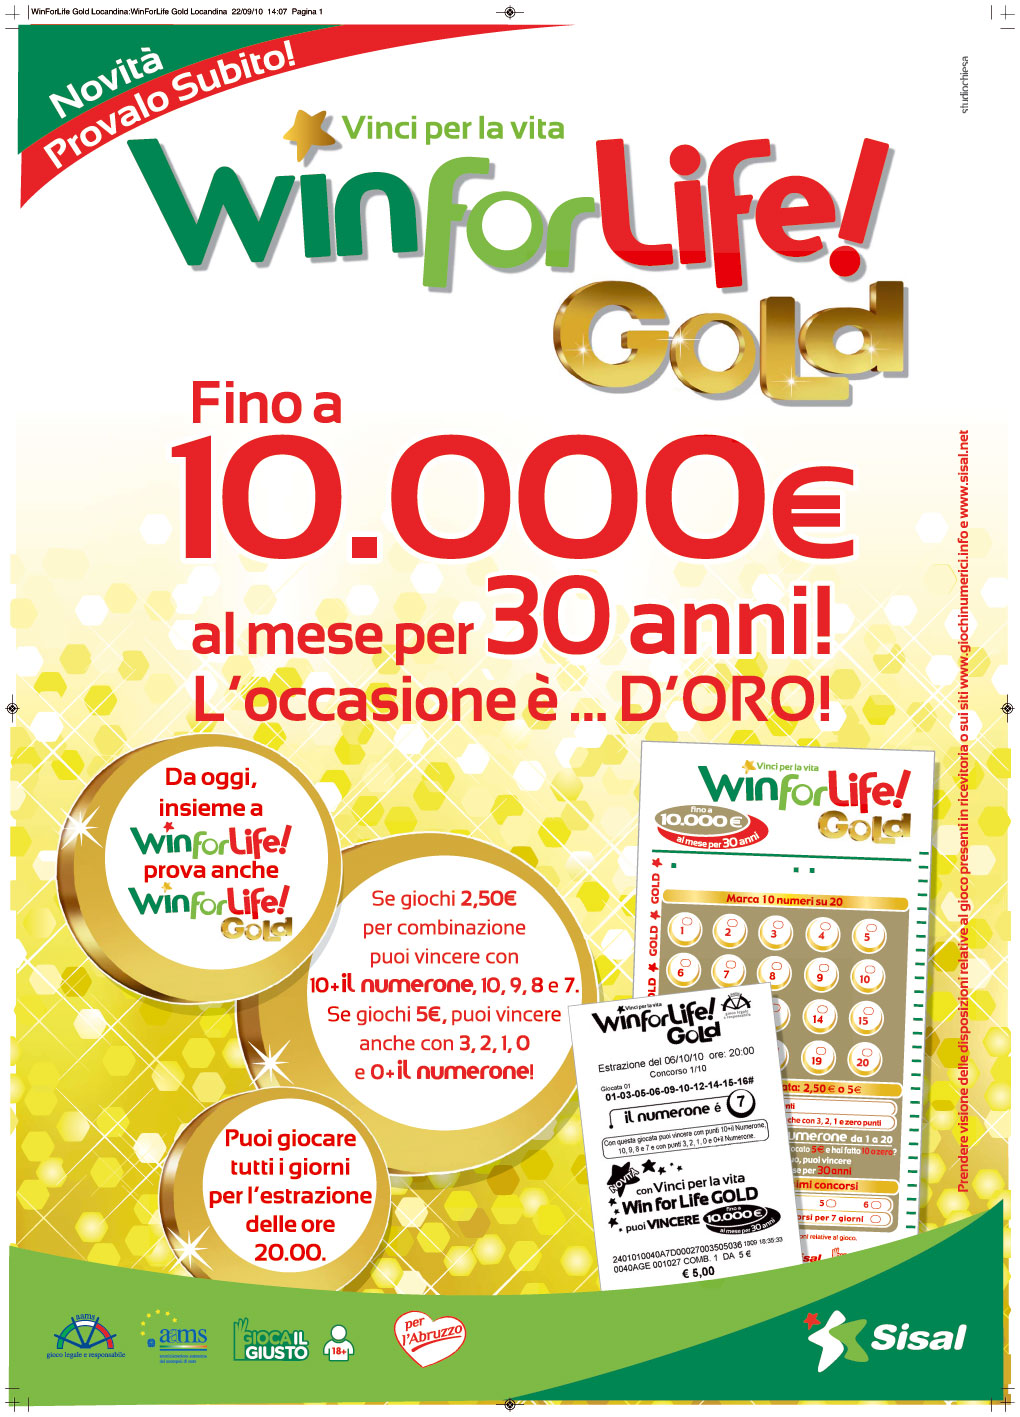 Tabaccheria Viterbo: WIN FOR LIFE 10.000 € AL MESE PER 30 ANNI